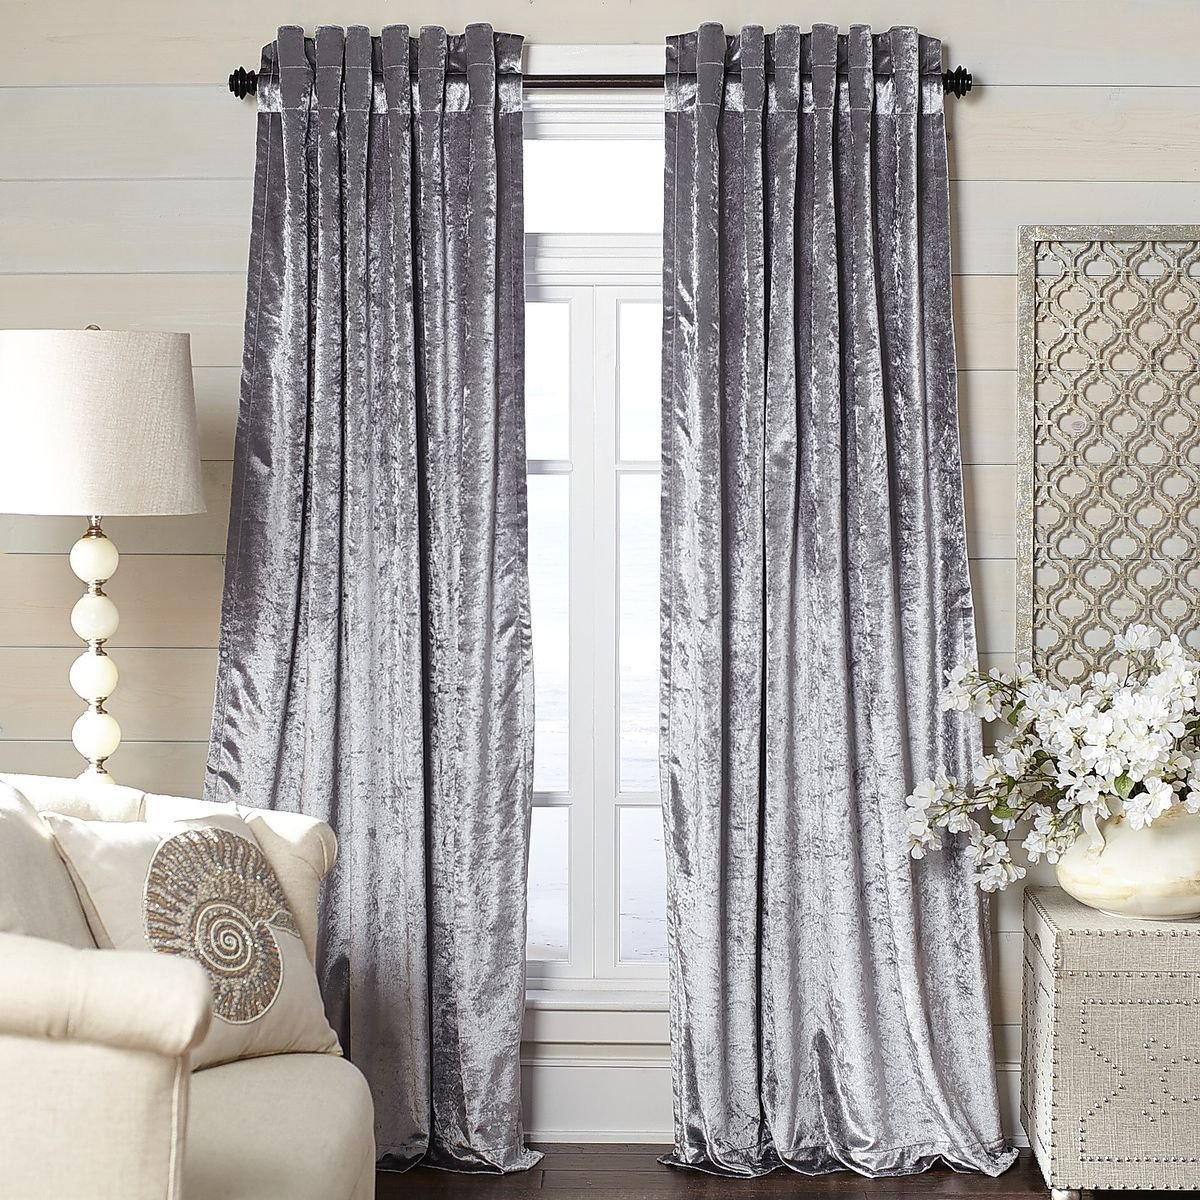 Pier 1 Imports Throughout Velvet Dream Silver Curtain Panel Pairs (View 3 of 20)